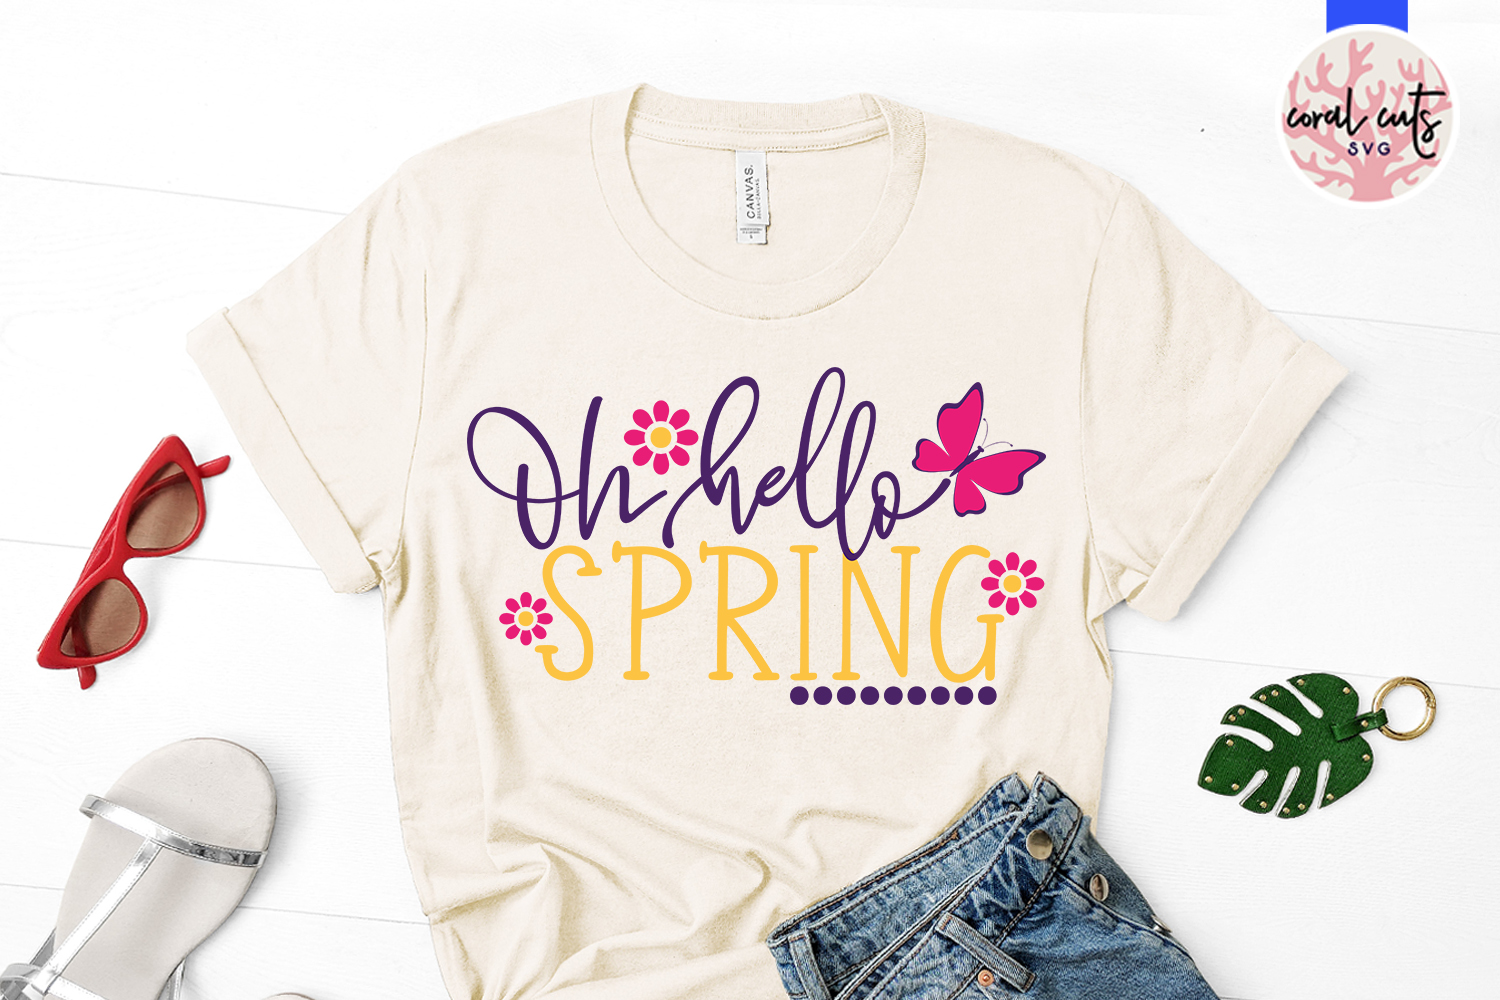 Oh hello spring - Easter SVG EPS DXF PNG Cutting File example image 2